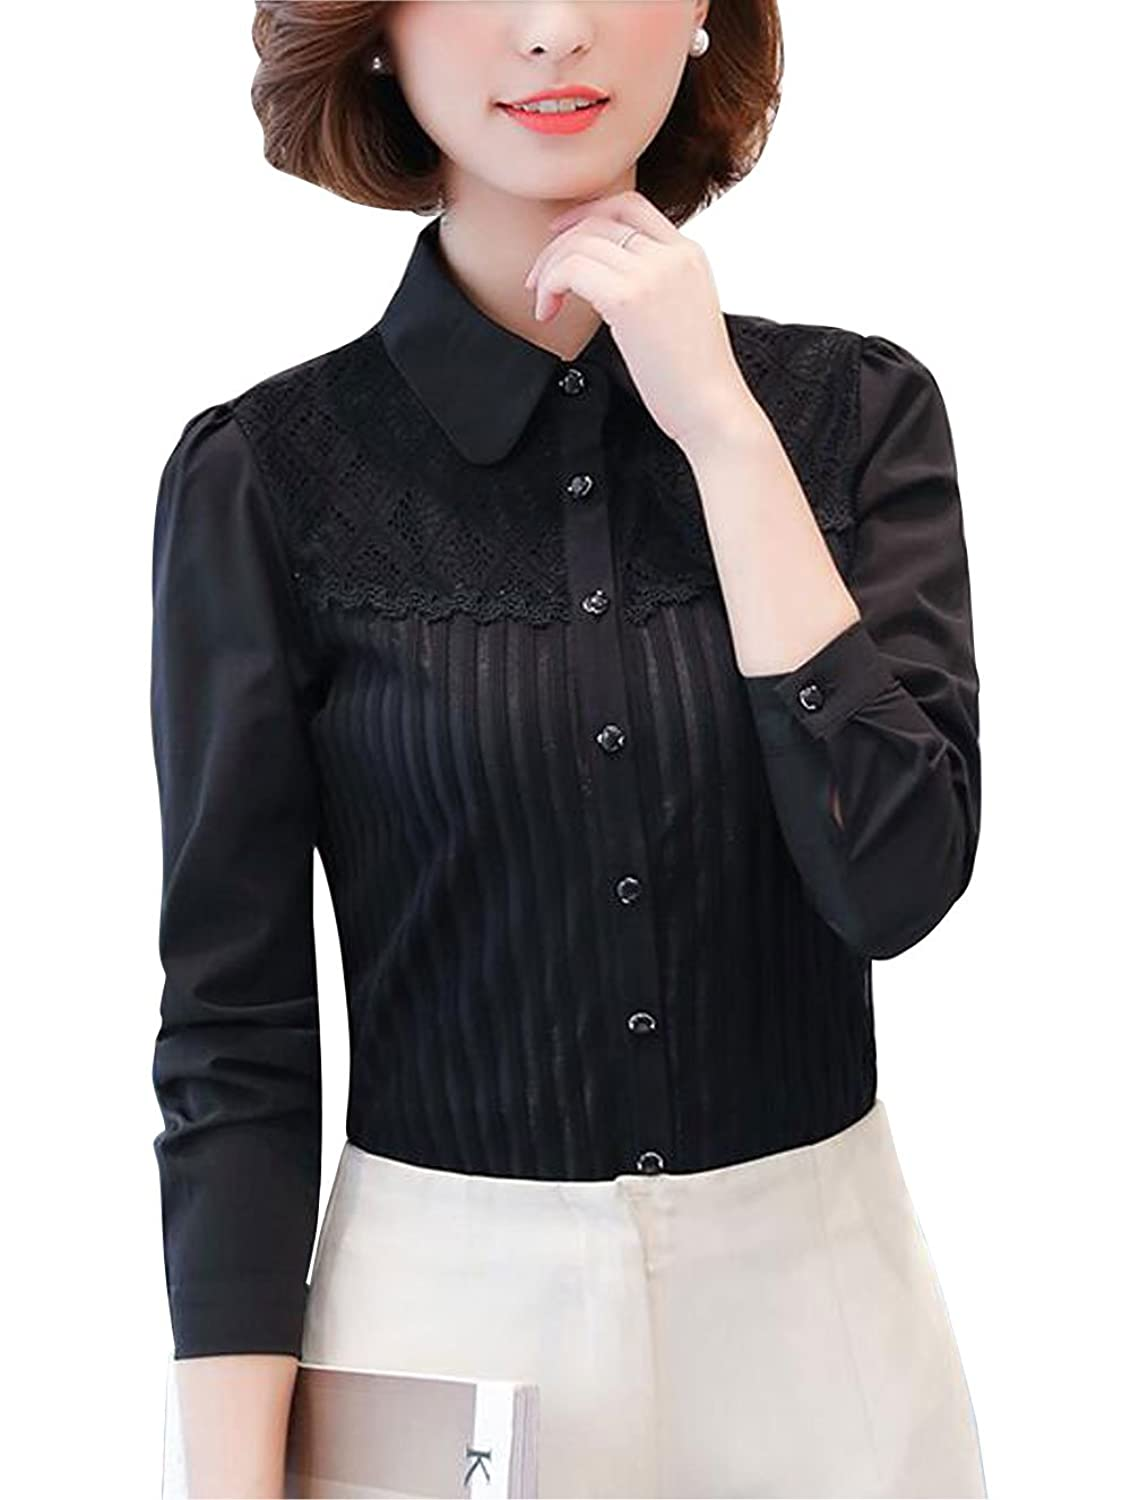 Steampunk Costume Essentials for Women Double Plus Open DPO Womens Vintage Collared Pleated Button Down Shirt Long Sleeve Lace Stretchy Blouse $23.59 AT vintagedancer.com